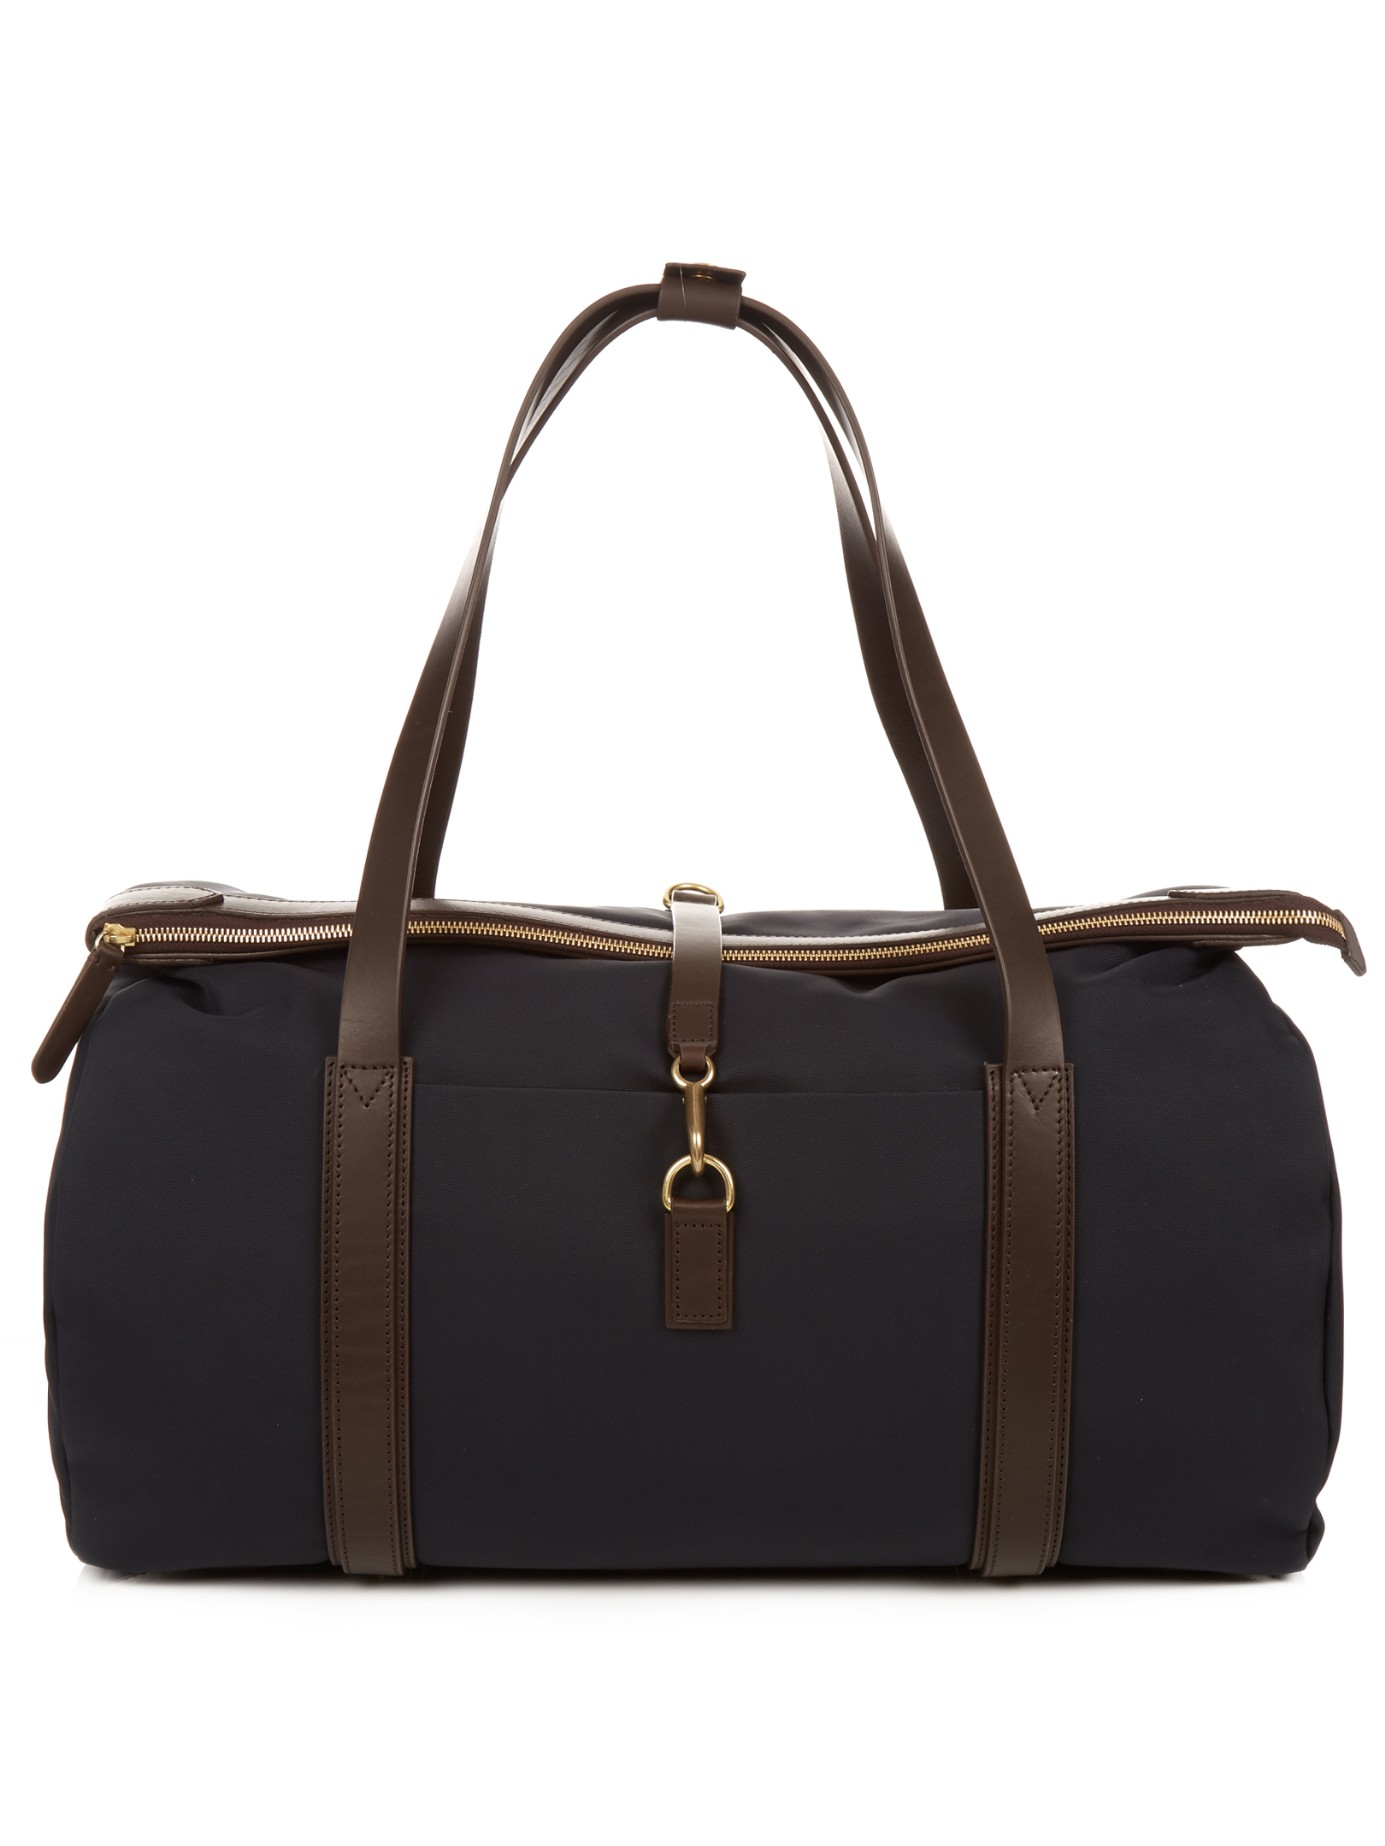 6c1678623266 Gallery. Previously sold at  MATCHESFASHION.COM · Men s Weekend Bags ...